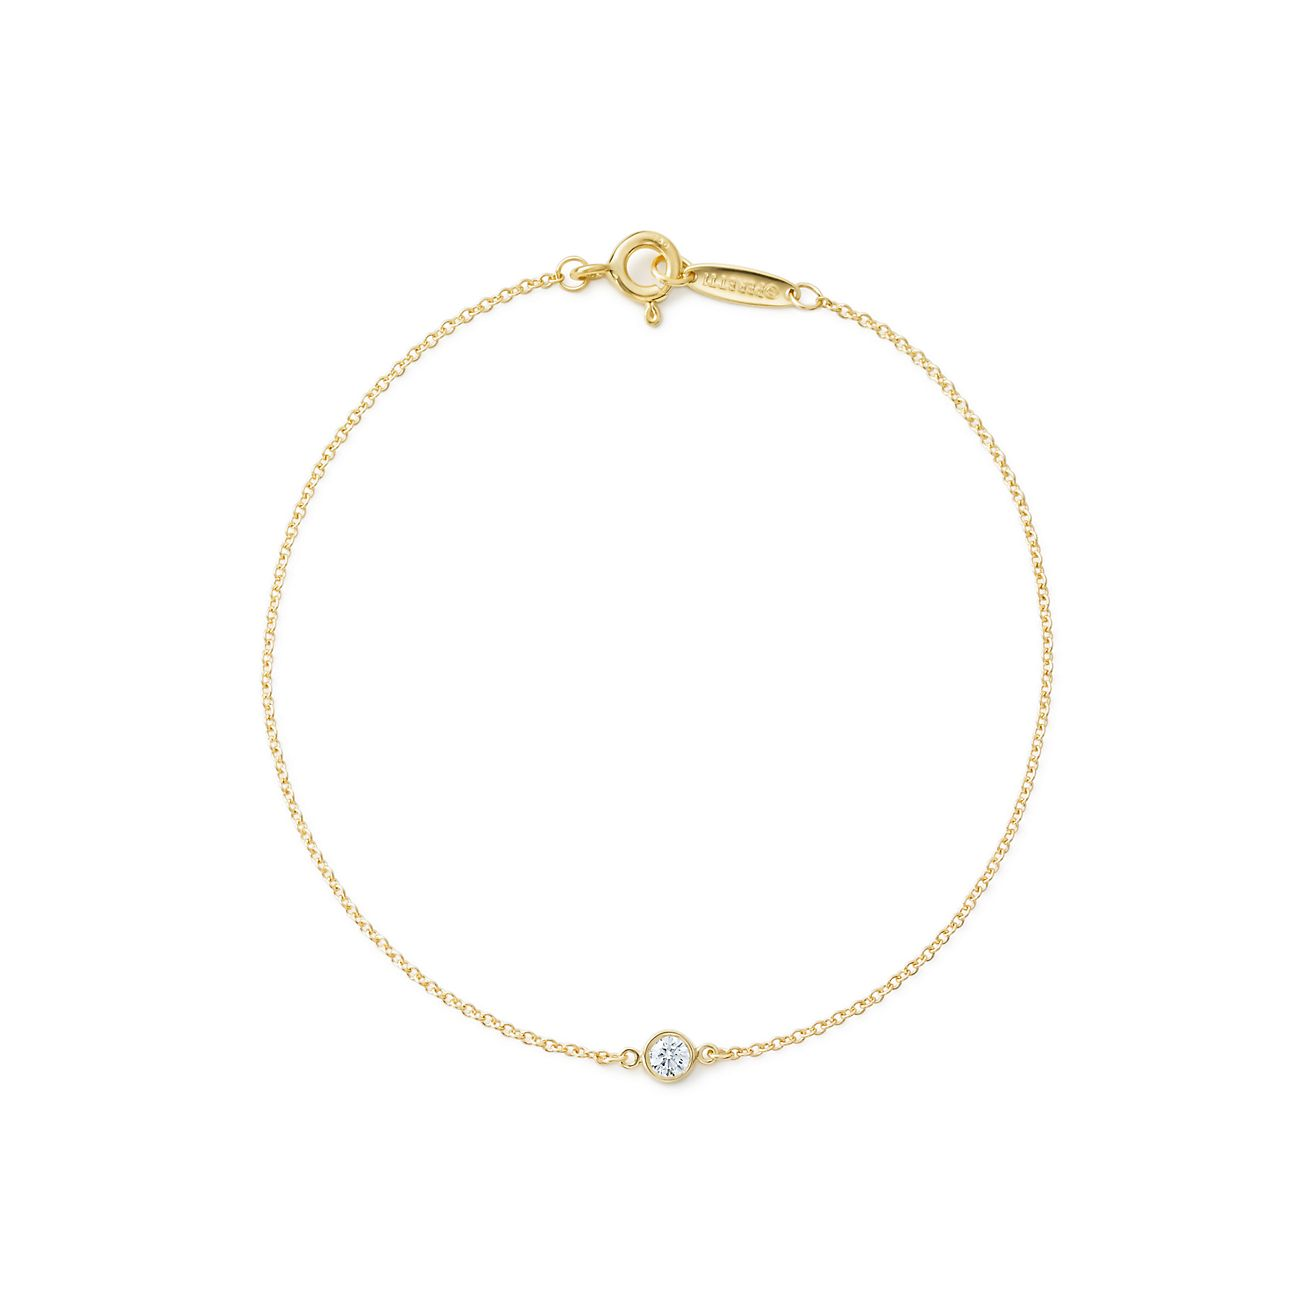 Elsa Peretti Diamonds by the Yard bracelet in 18k gold with a diamond - Size.03 Tiffany & Co. zS6bpiT